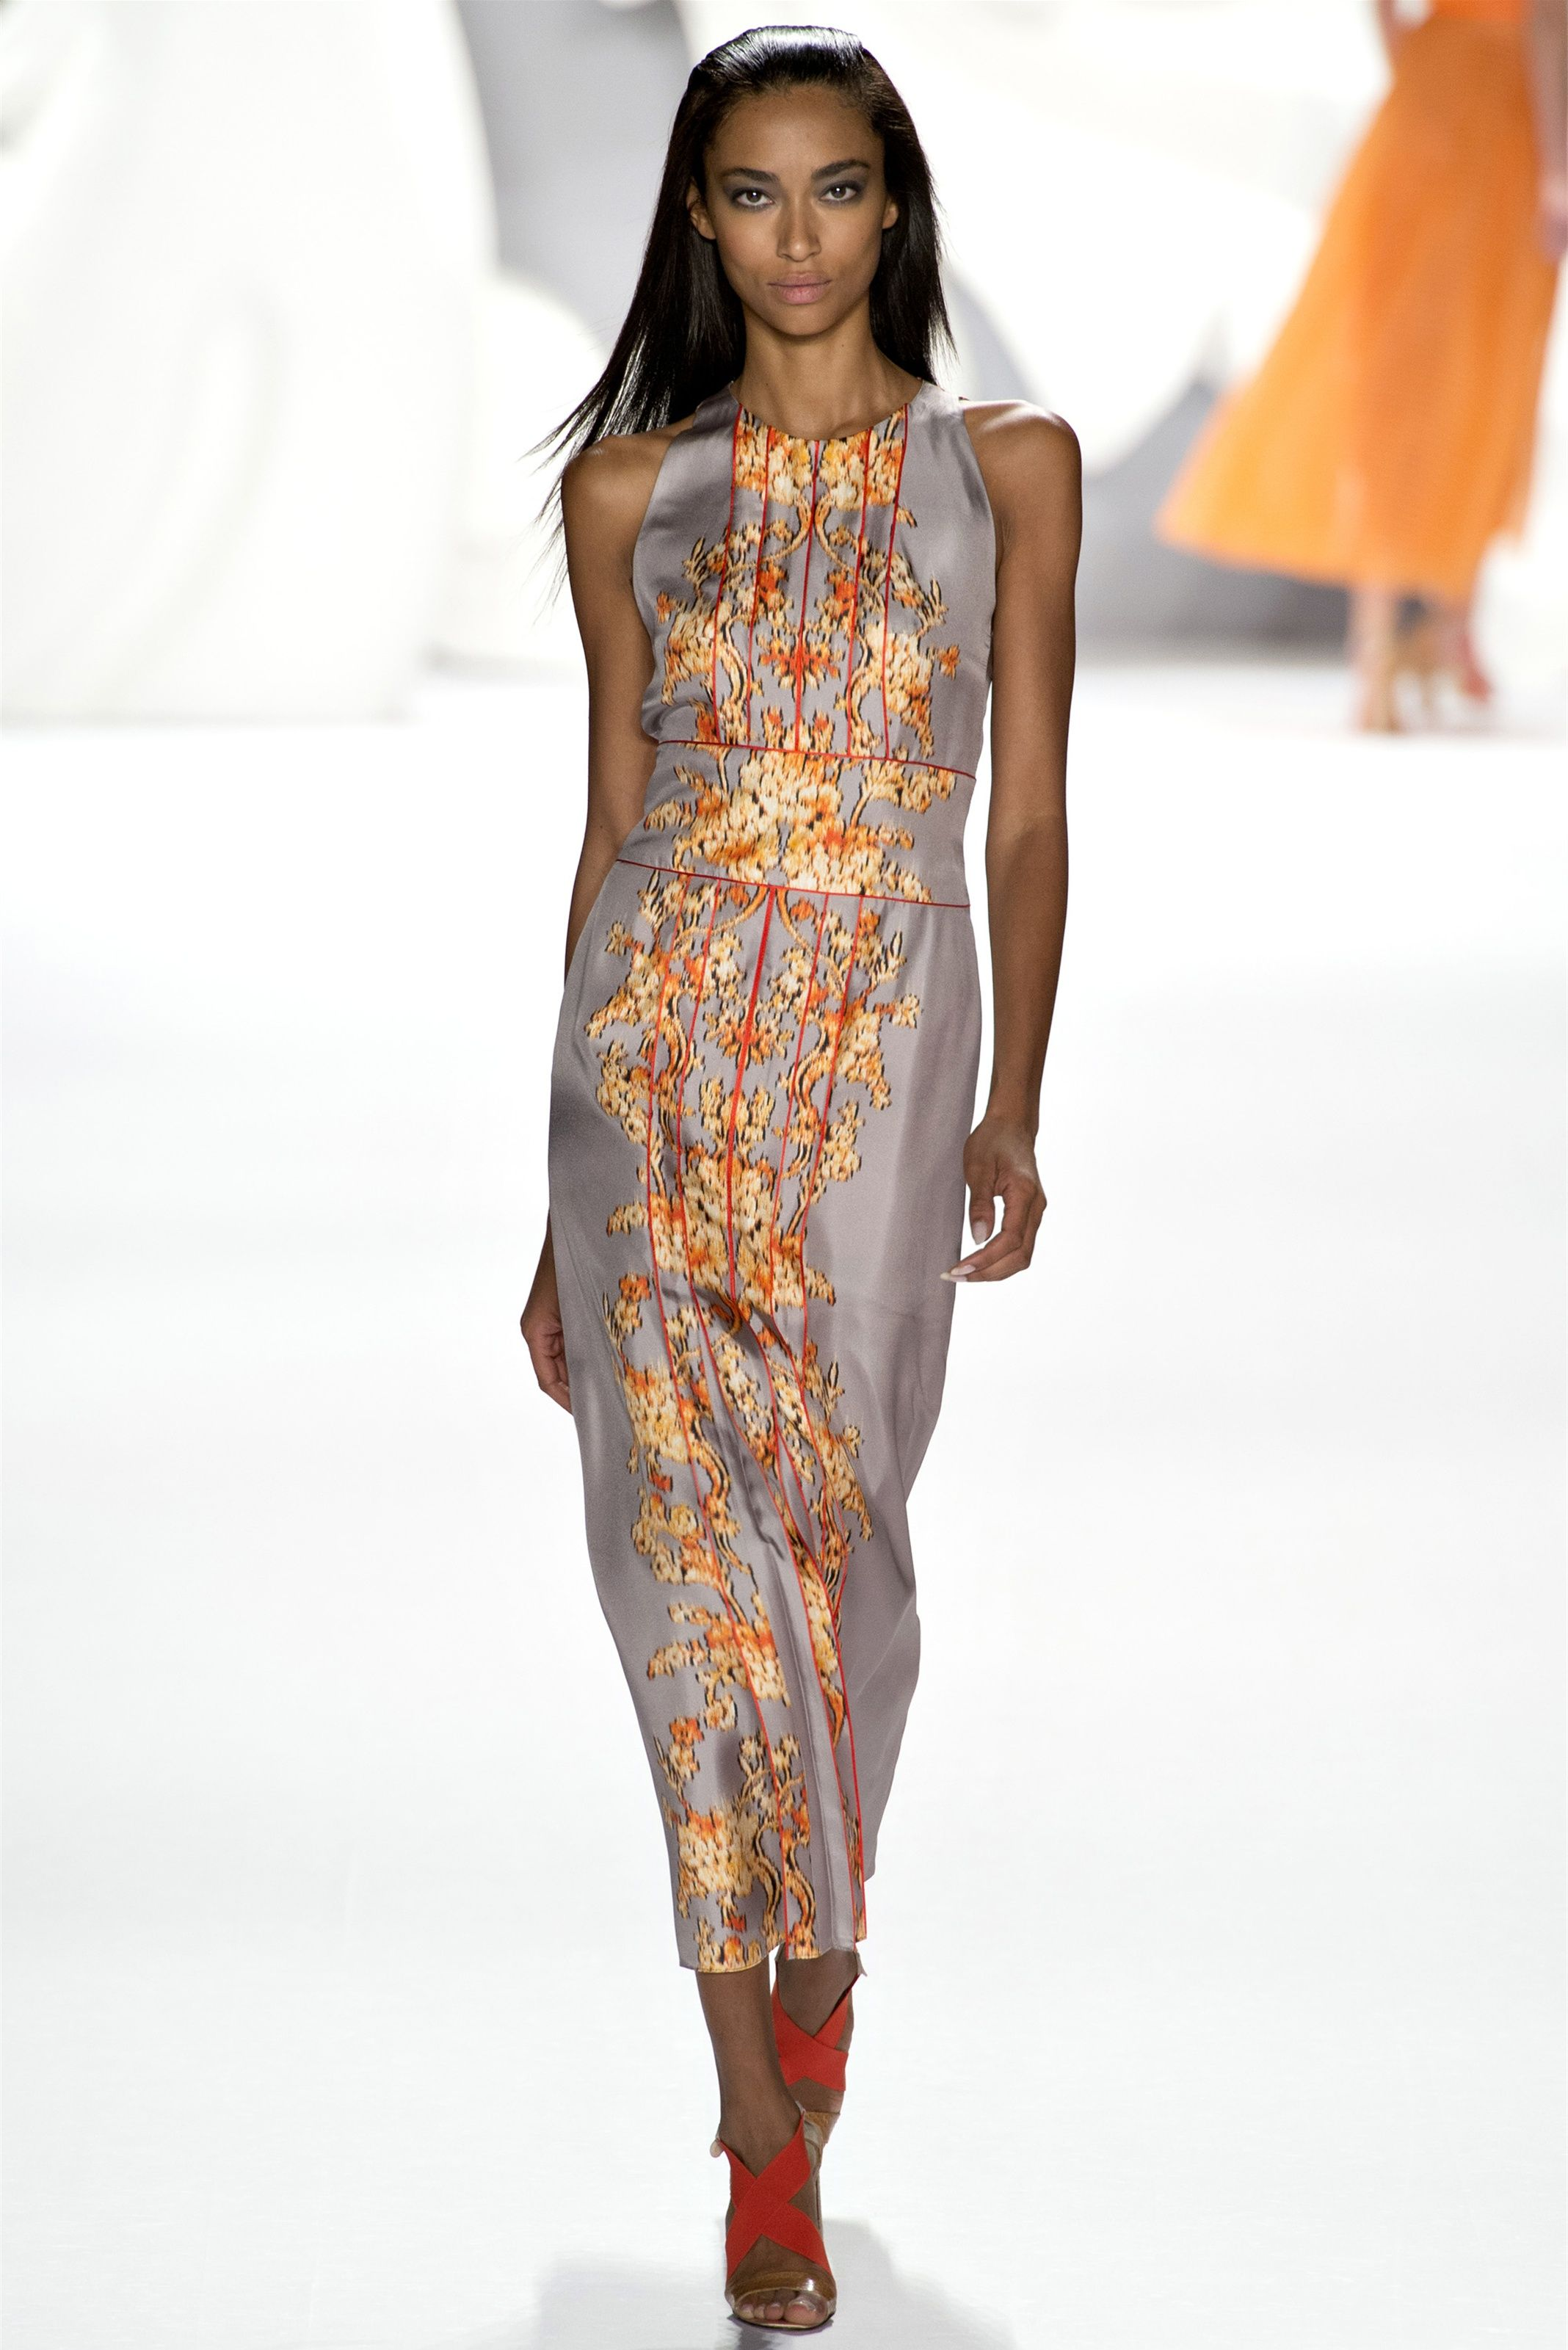 Carolina Herrera Spring Summer 2013 Ready-To-Wear